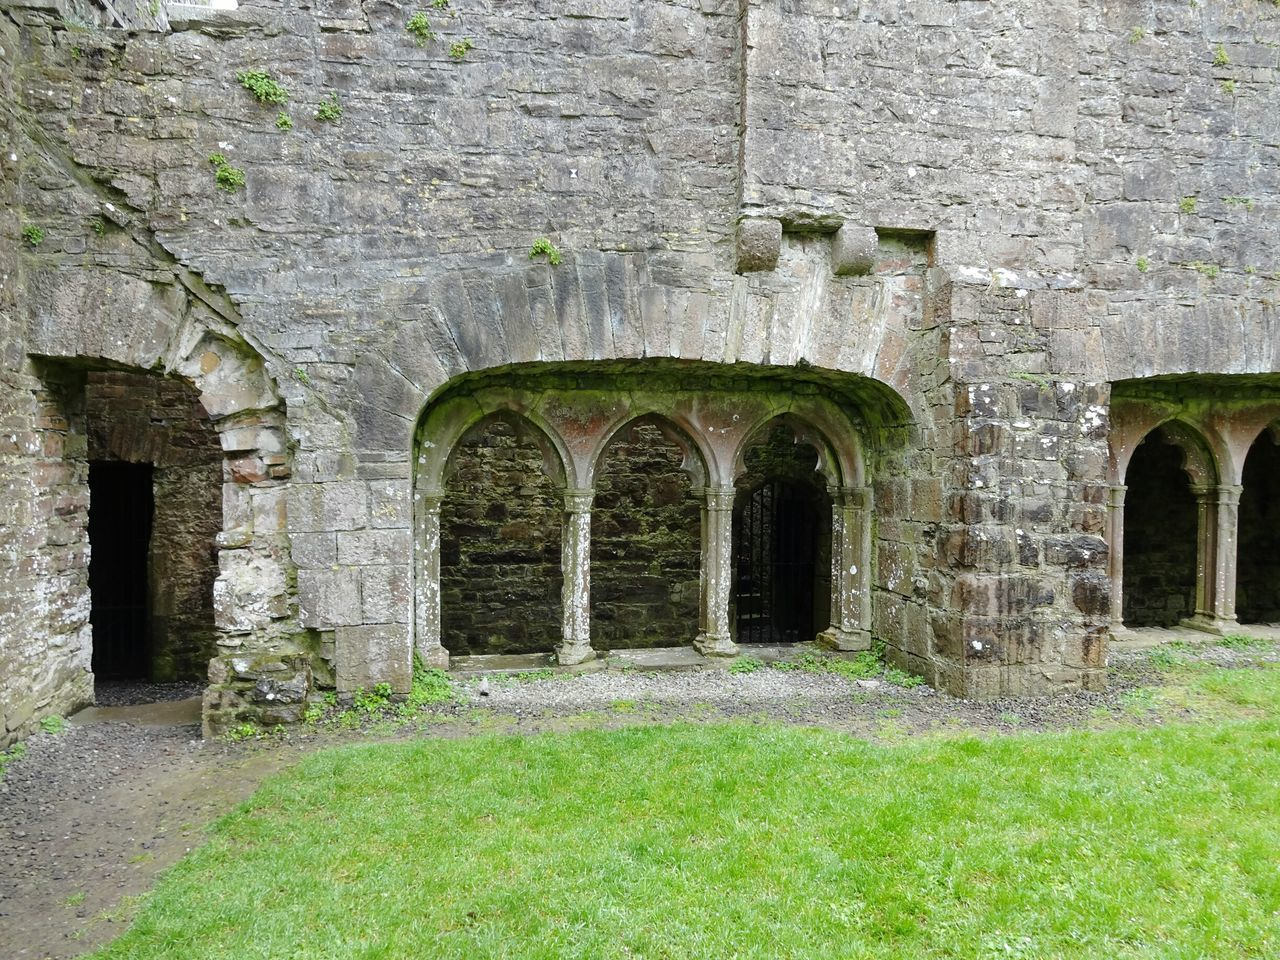 Architecture Arch Built Structure Green Color Day Building Exterior No People Grass Outdoors Nature Ireland Irland Ruine Ruin Ruined Building Kloster Monastery Cloudy Day Tranquil Scene History Bogengang Old Building  Stone Wall